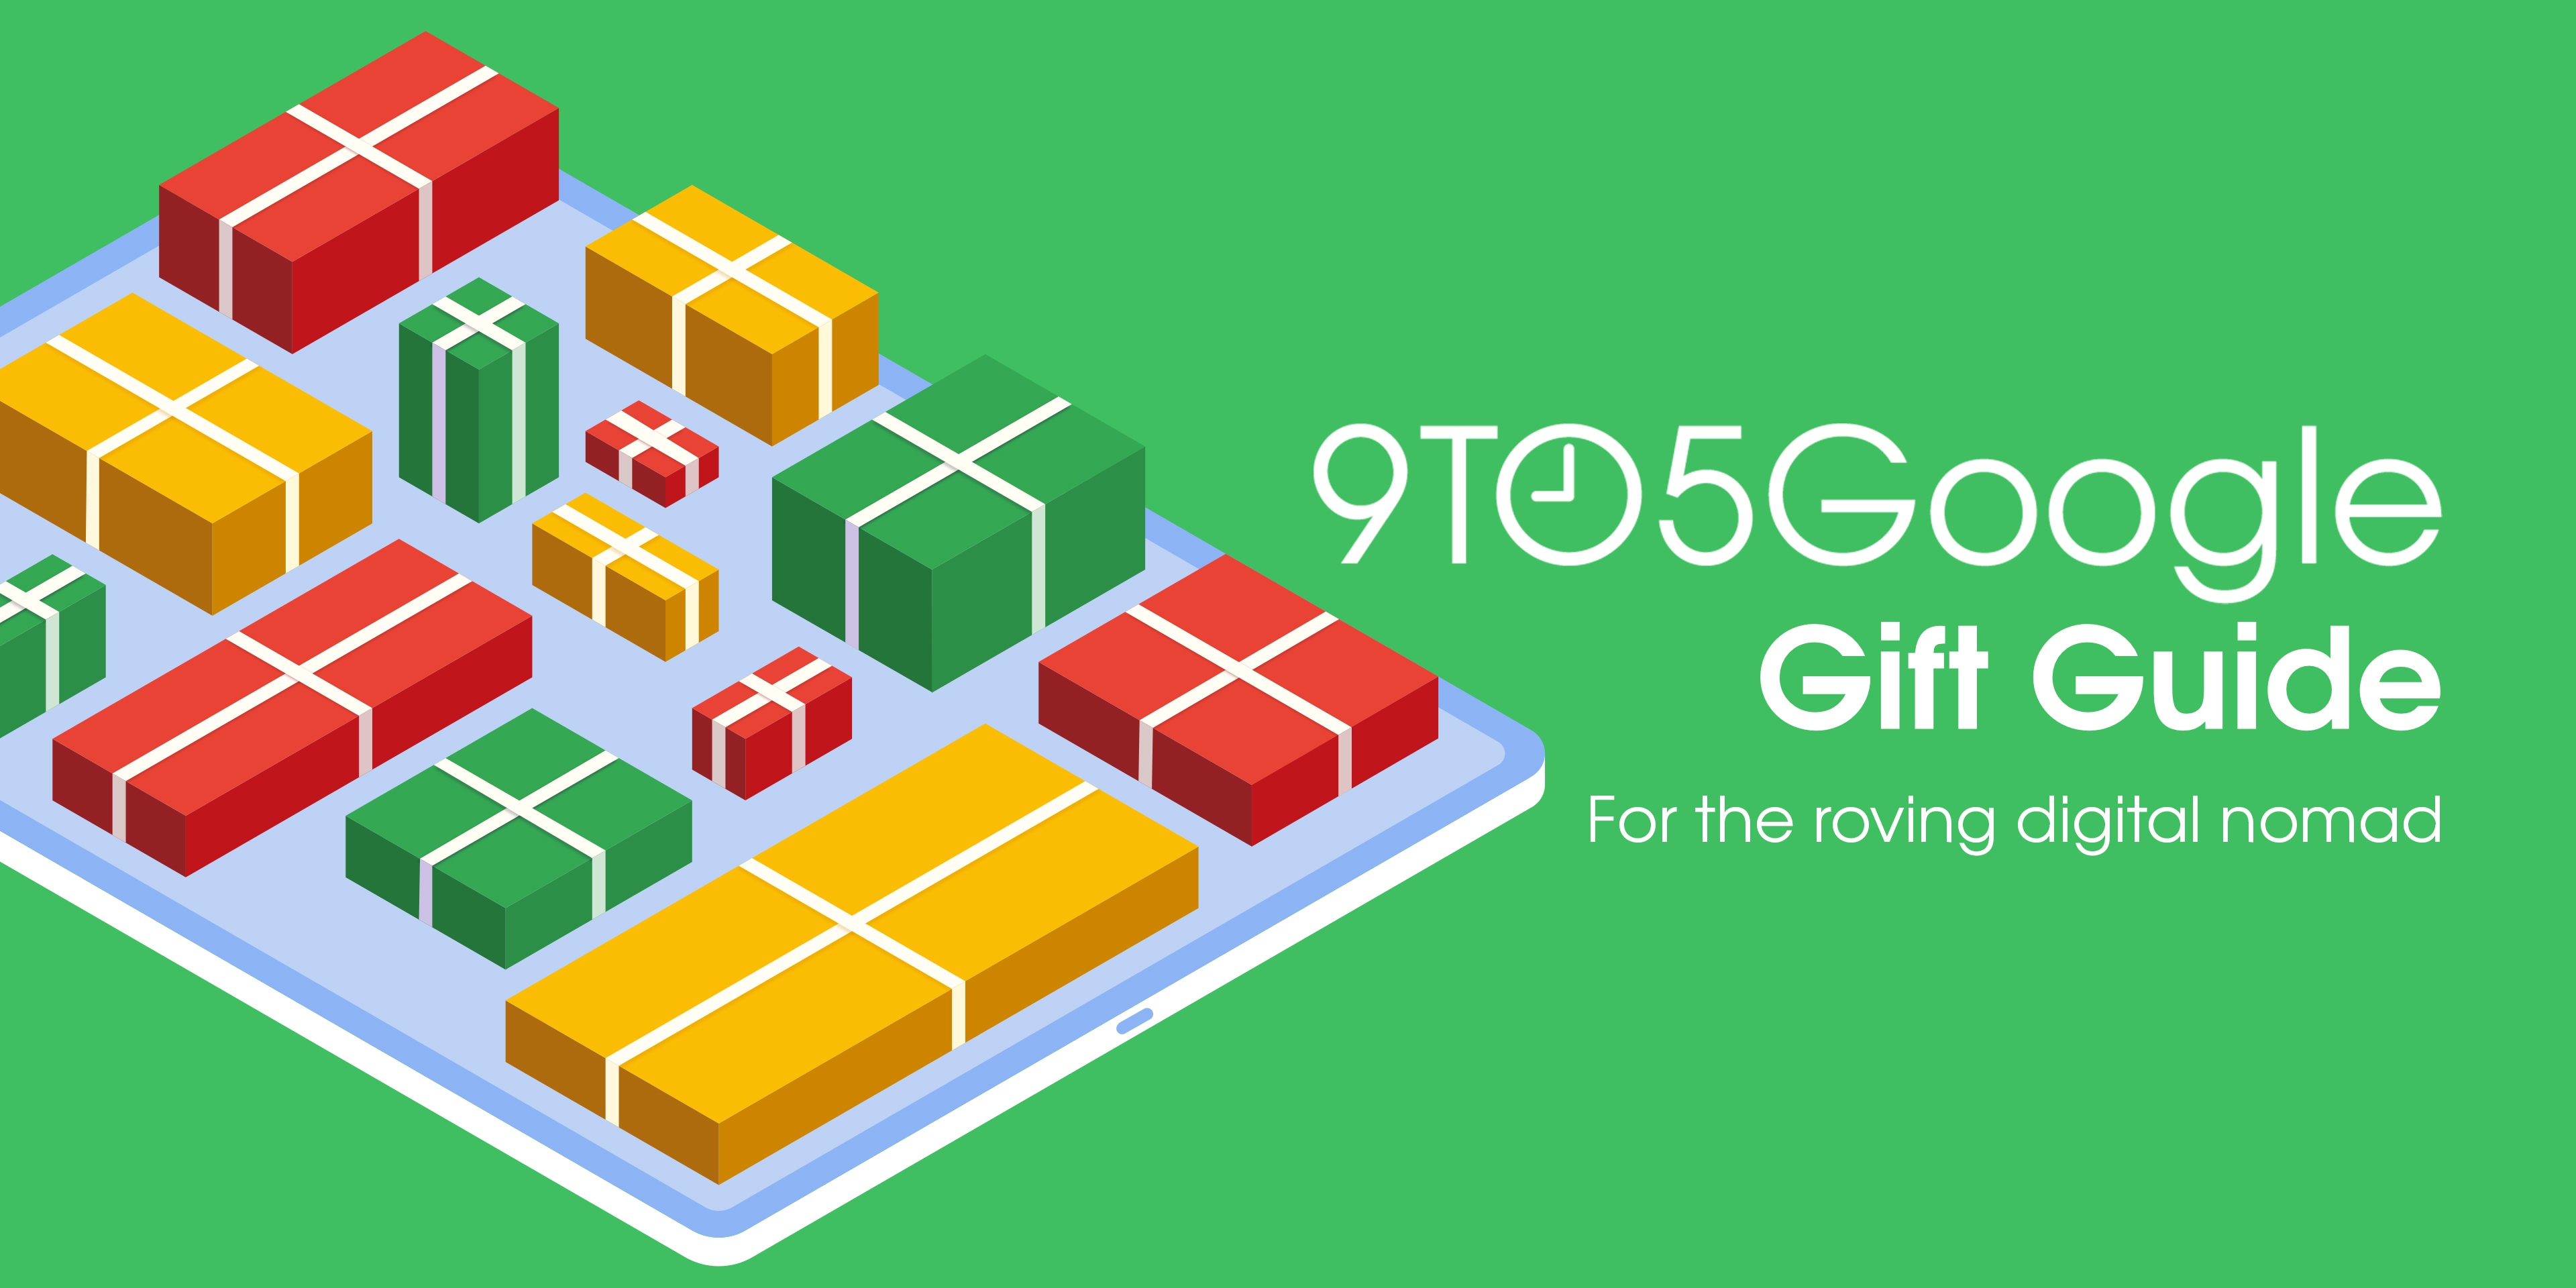 9to5Google Gift Guide: Best gifts for the roving digital nomad